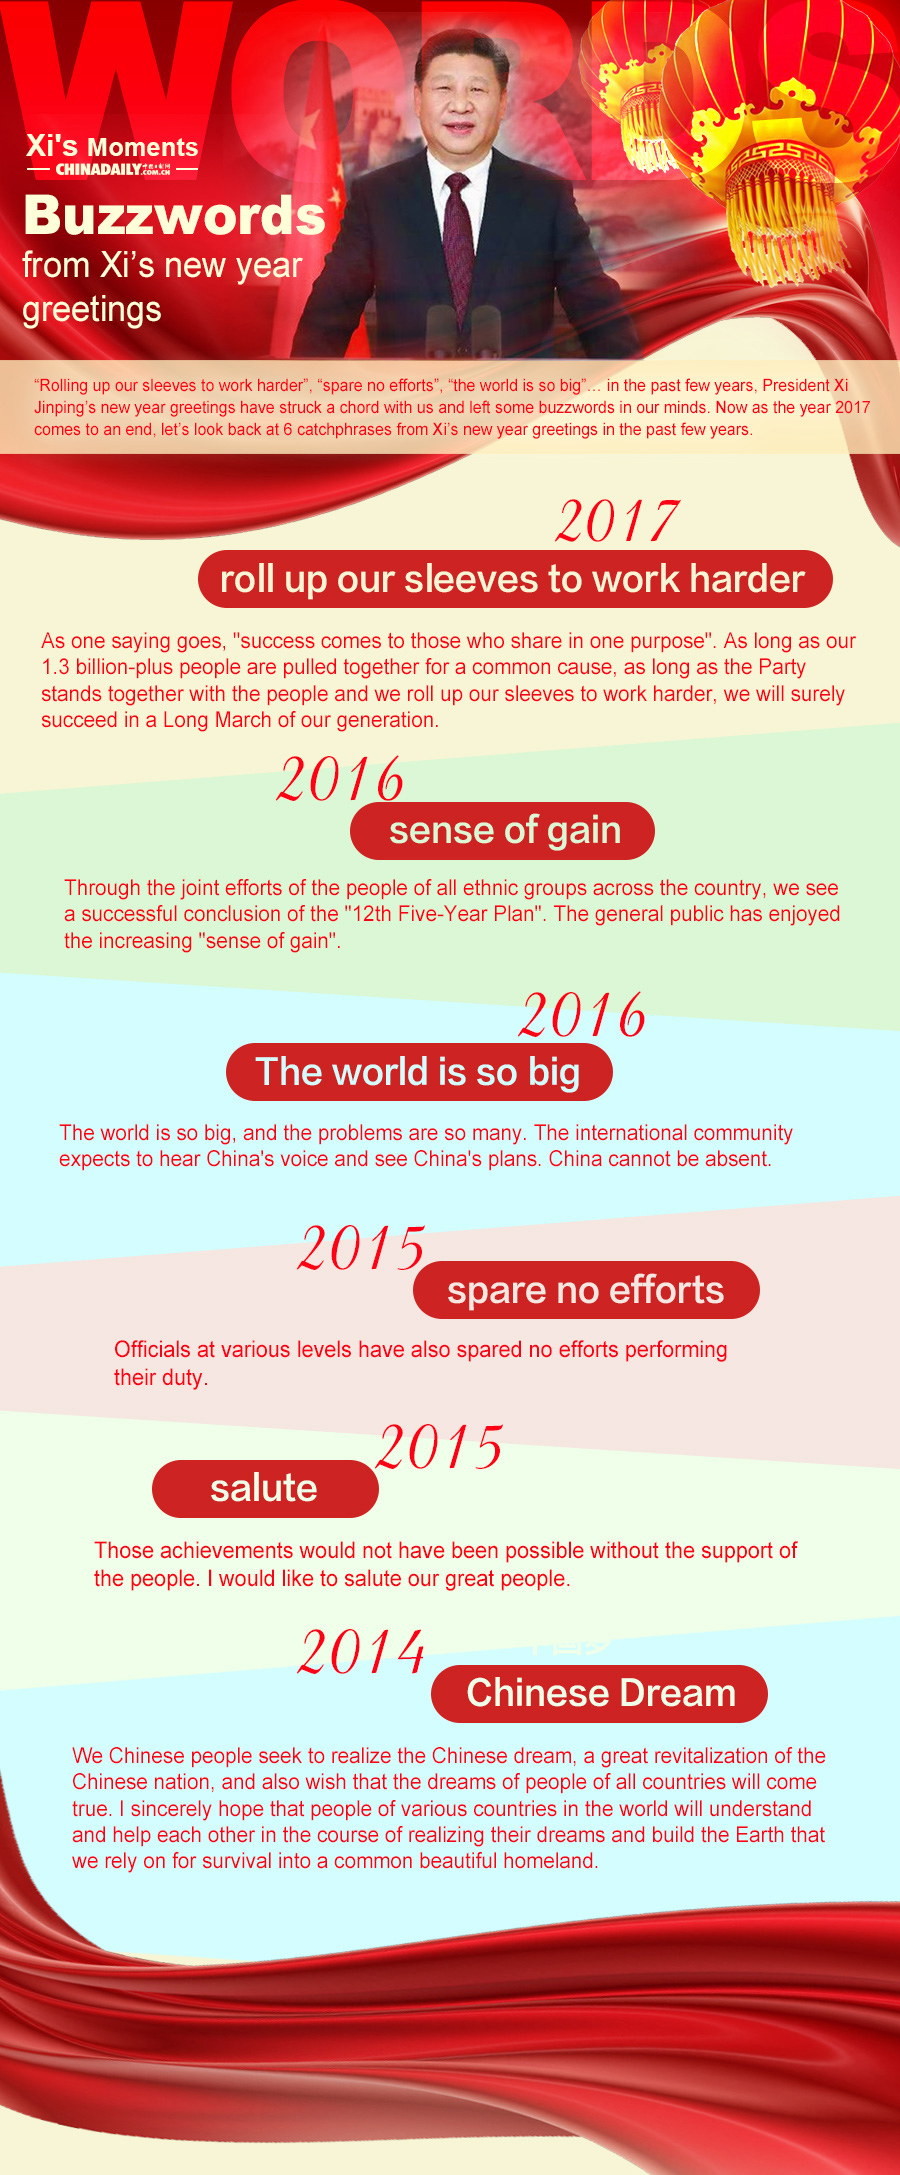 Buzzwords From Xis New Year Greetings11